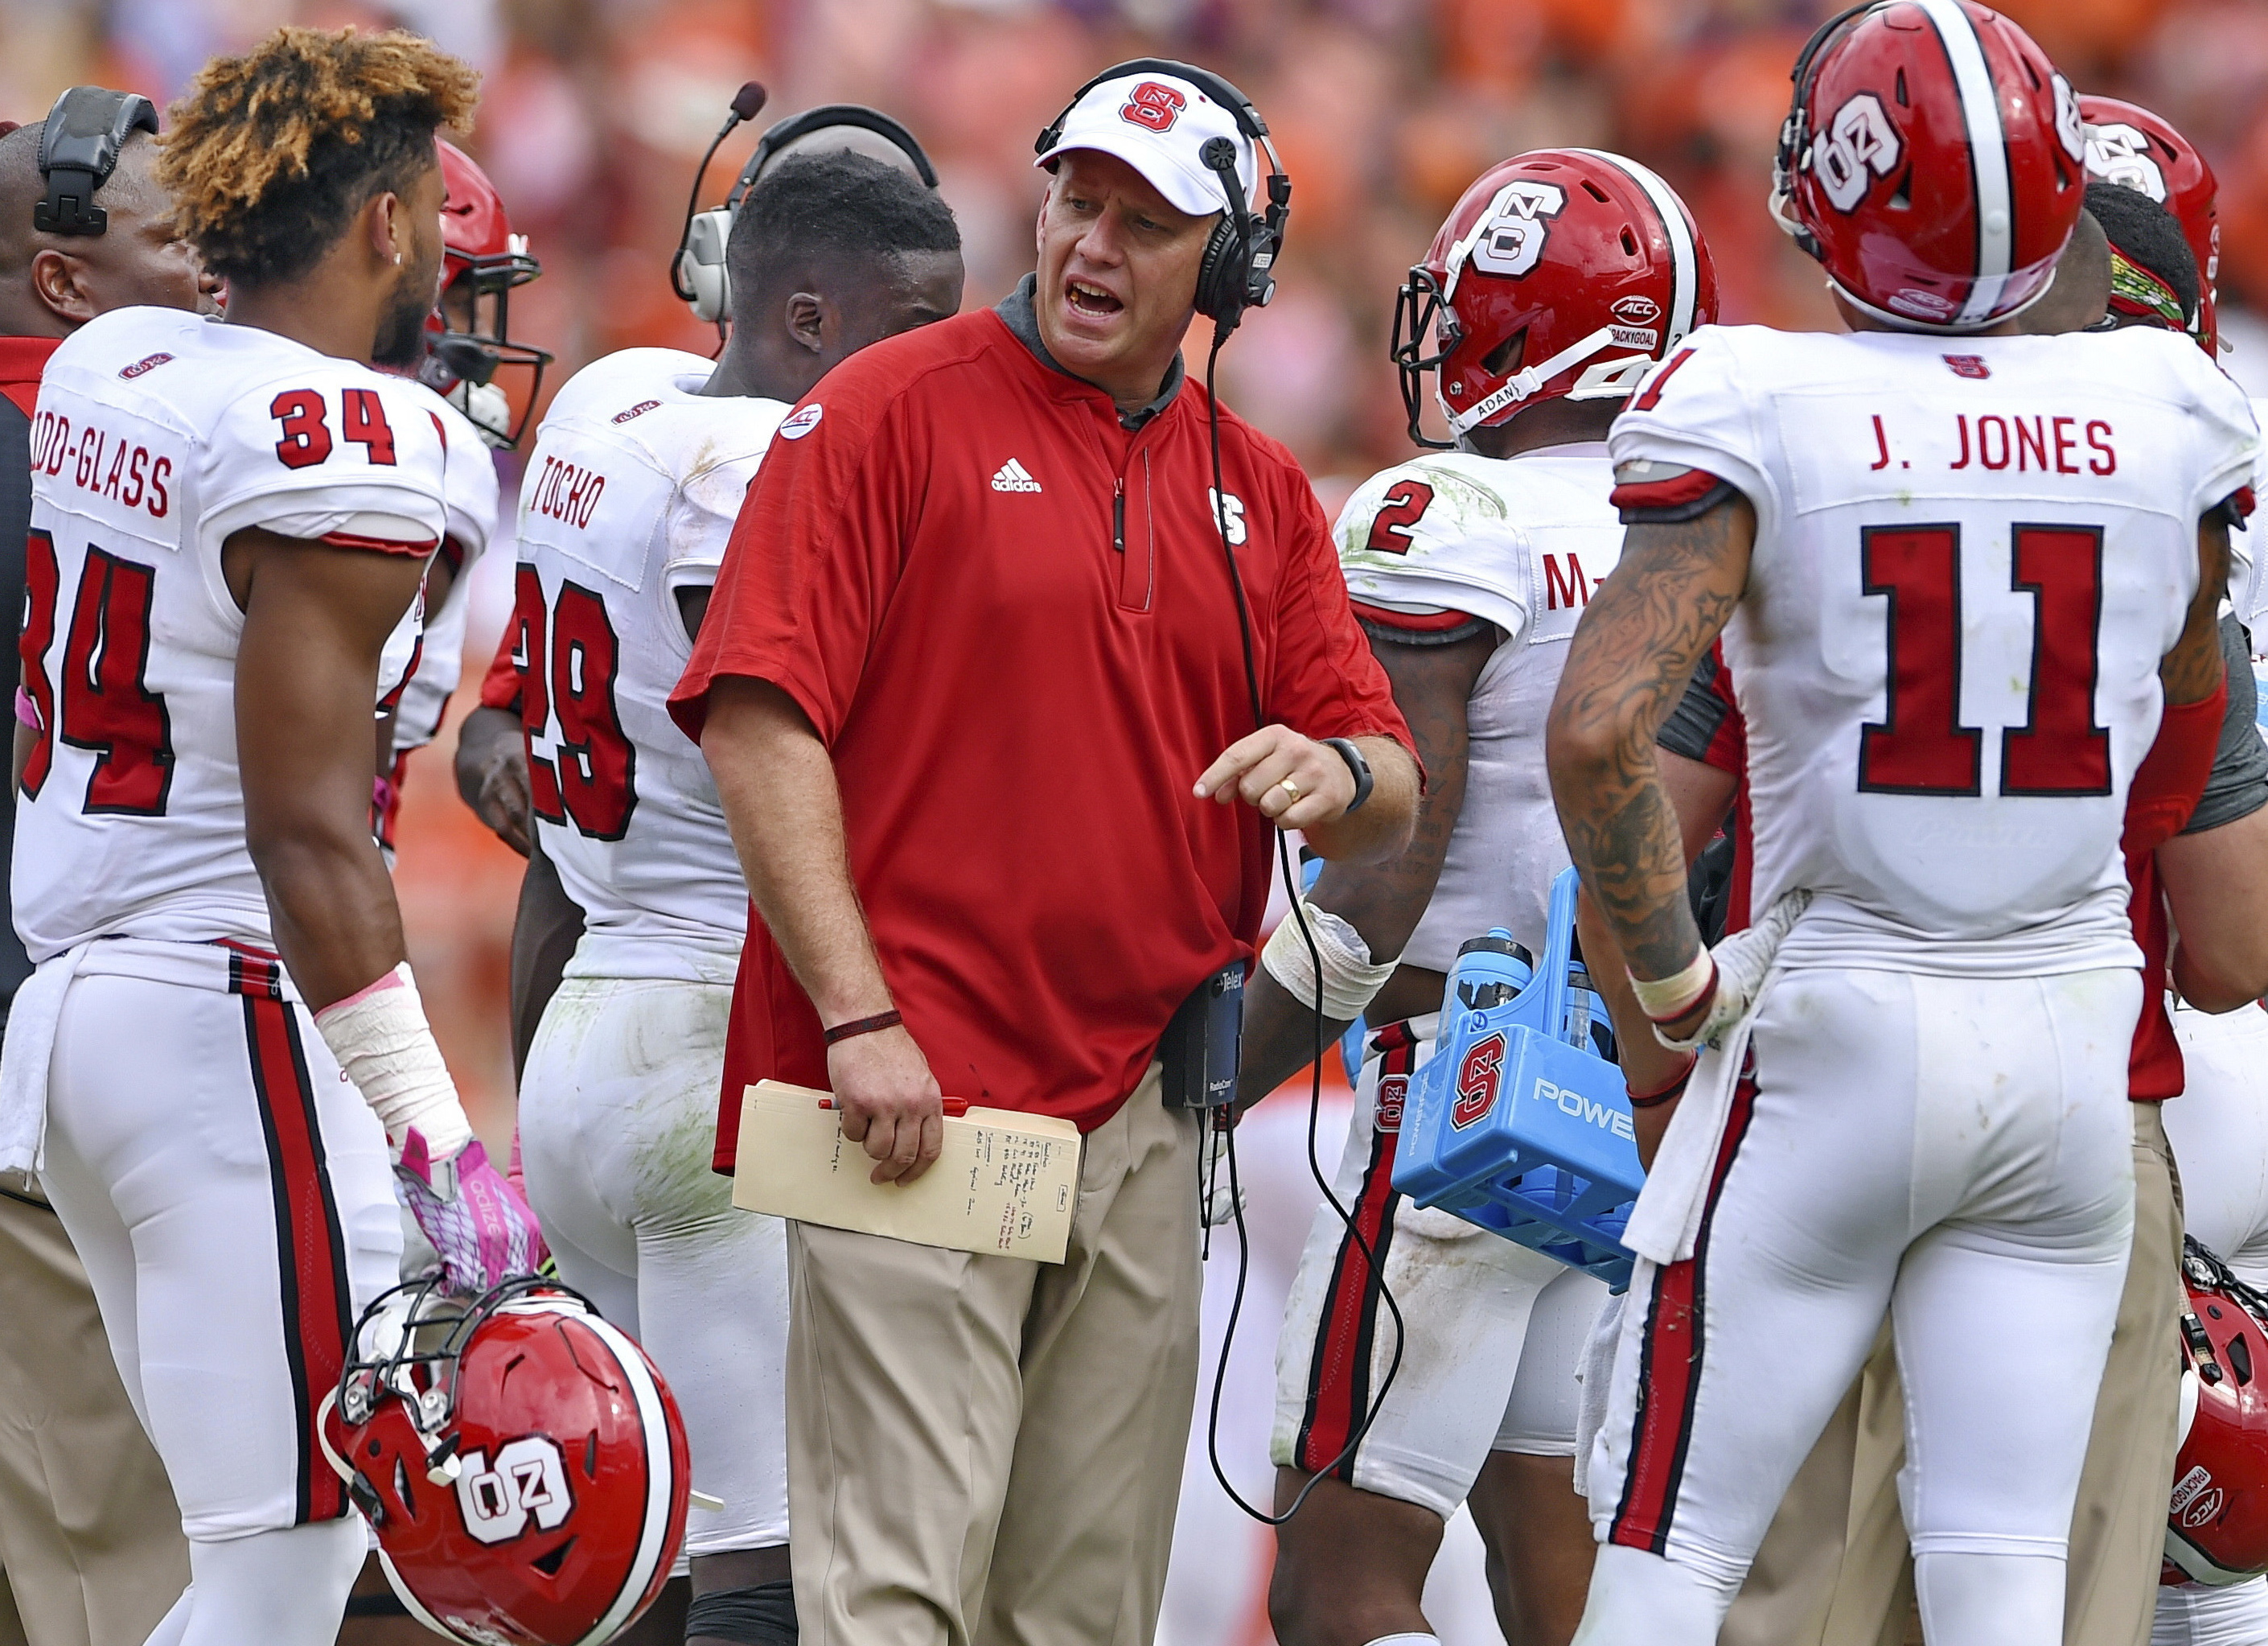 FILE - In this Oct. 15, 2016, file photo, North Carolina State head coach Dave Doeren reacts during the second half of an NCAA college football game against Clemson in Clemson, S.C. The Wolfpack lost eight turnovers during a three-game losing streak enter